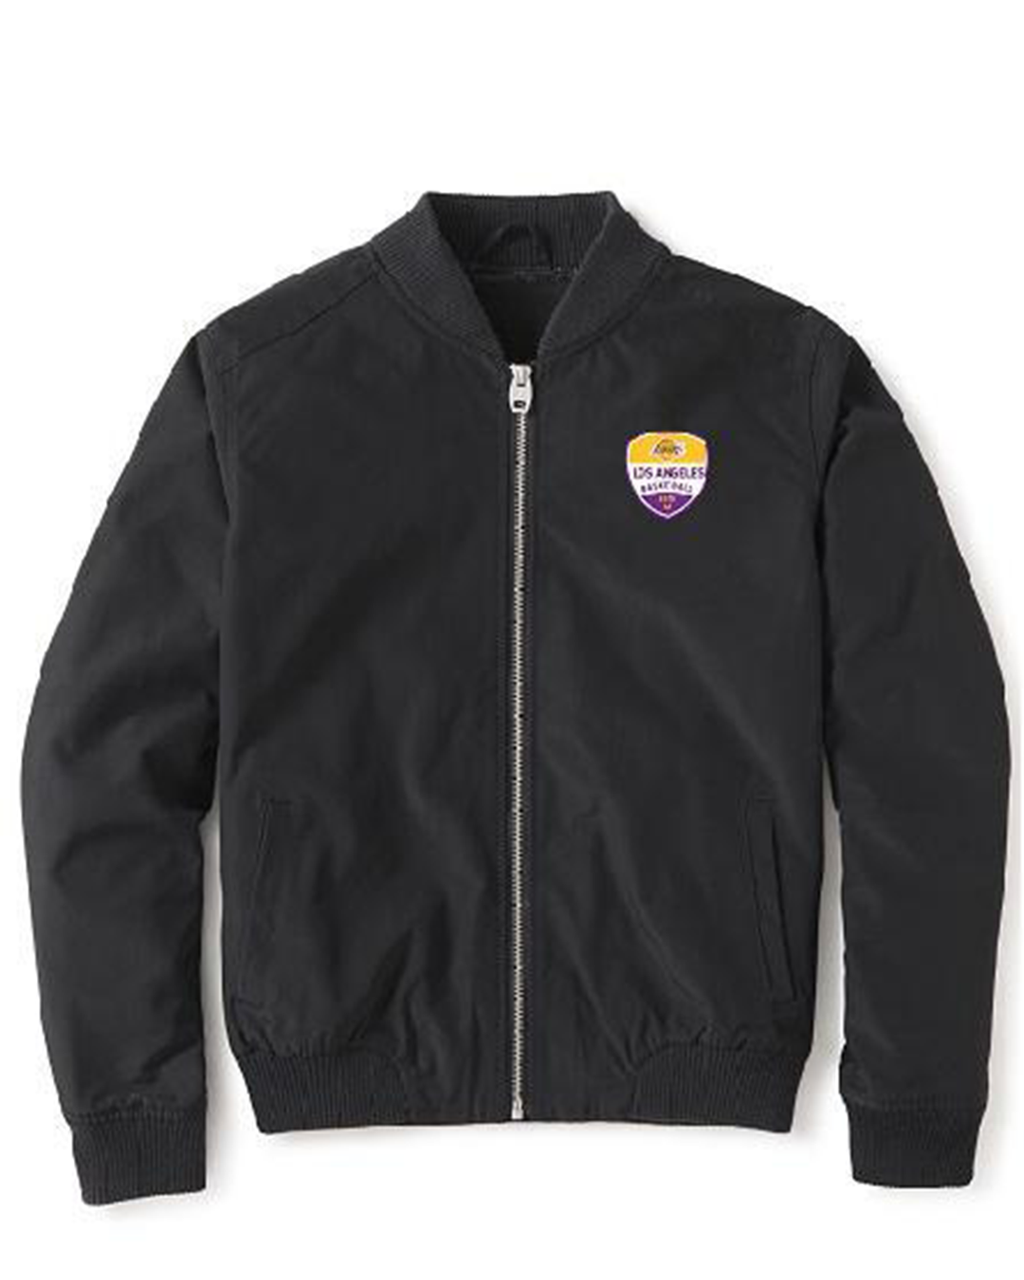 Los Angeles Lakers Women's Ace Full Zip Bomber Jacket